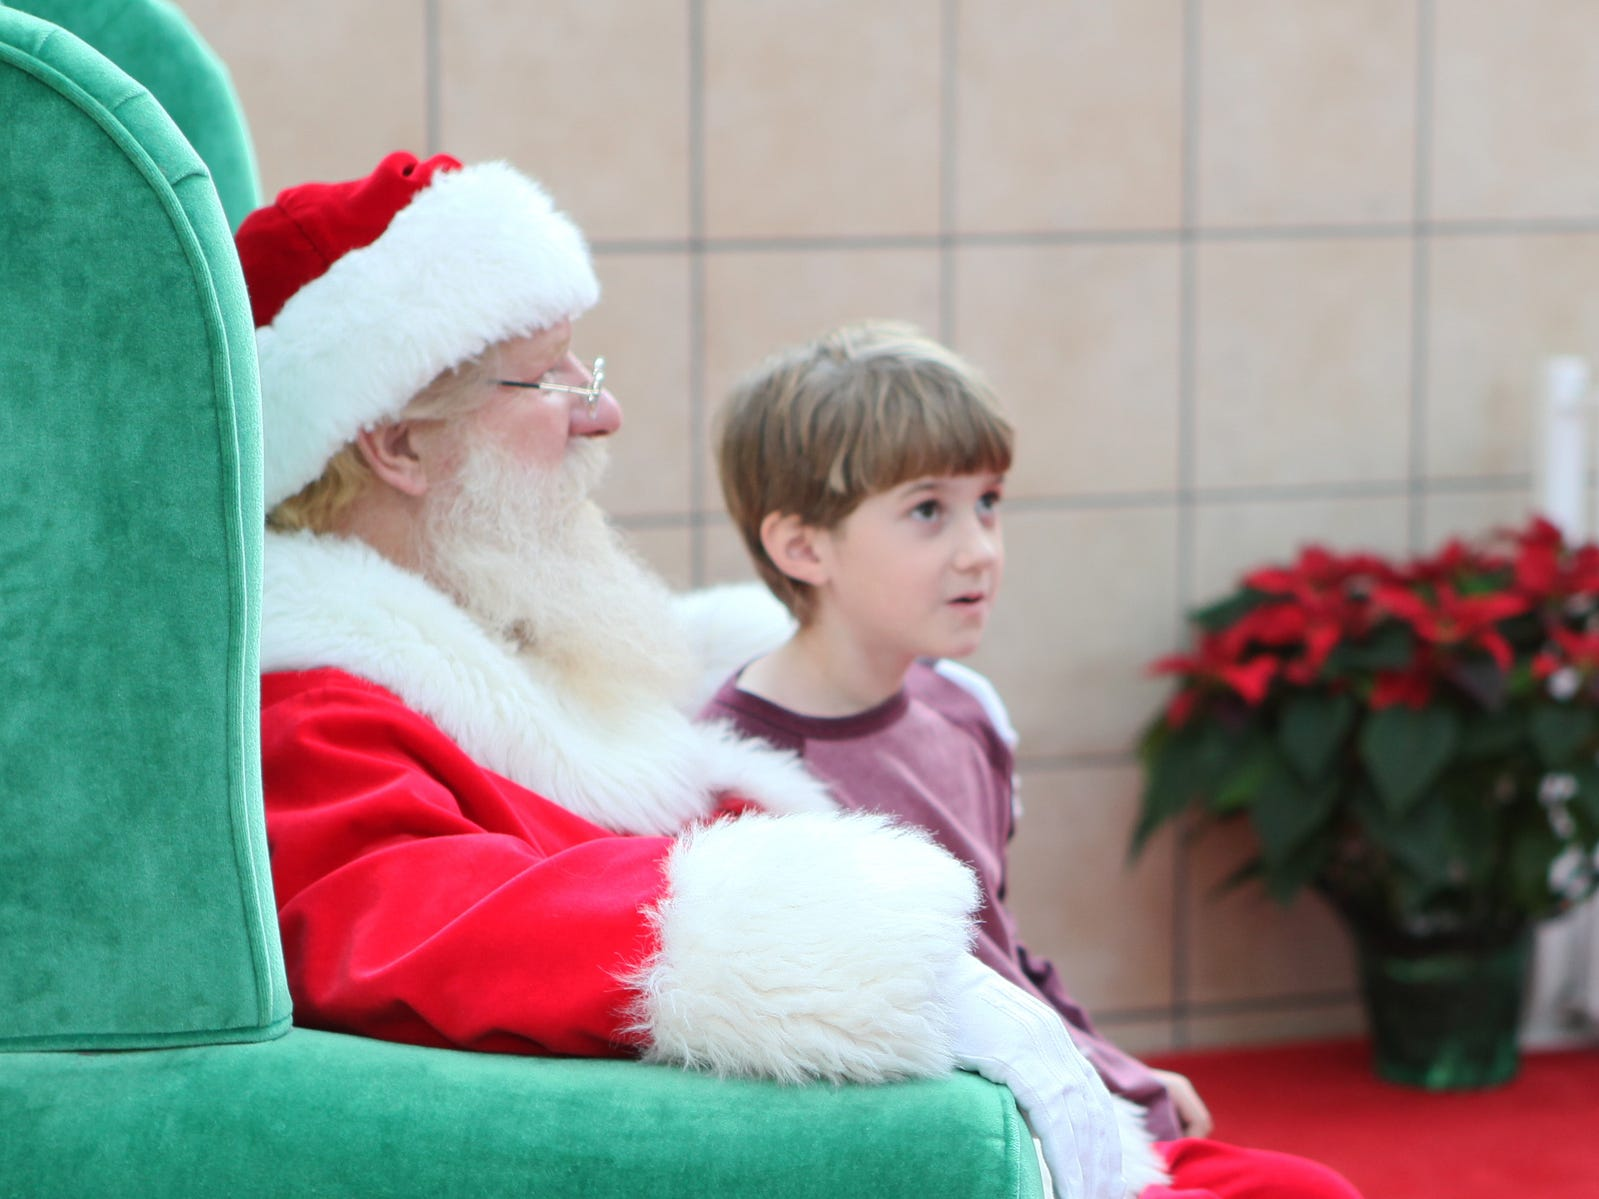 Peyton McClure, 7, of Wellsboro, has his picture taken with Santa in 2012.